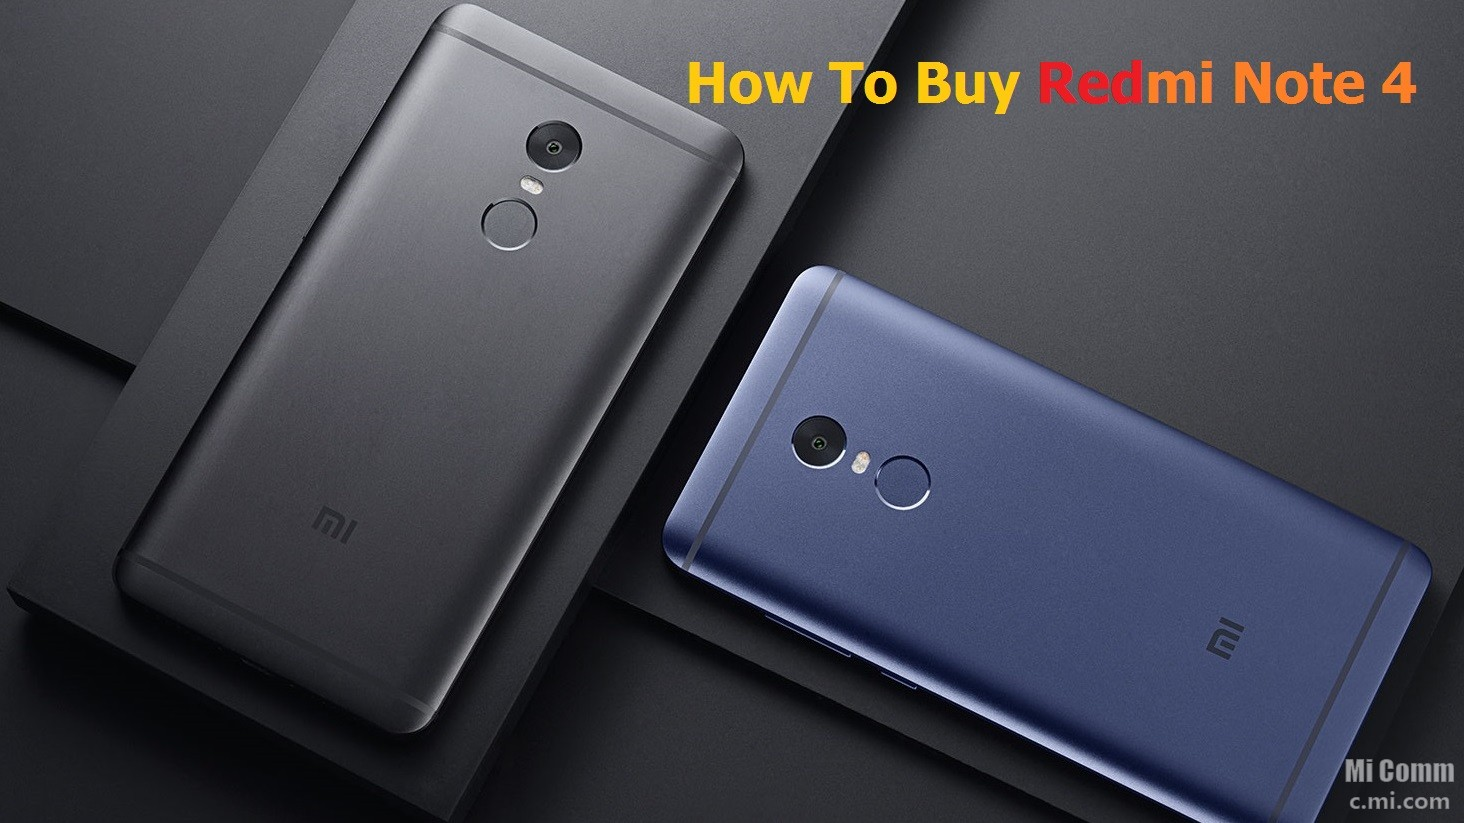 Xiaomi Redmi Note 4 Tips And Tricks: Still Could Not Buy Redmi Note 4 ! Tips & Tricks To Buy